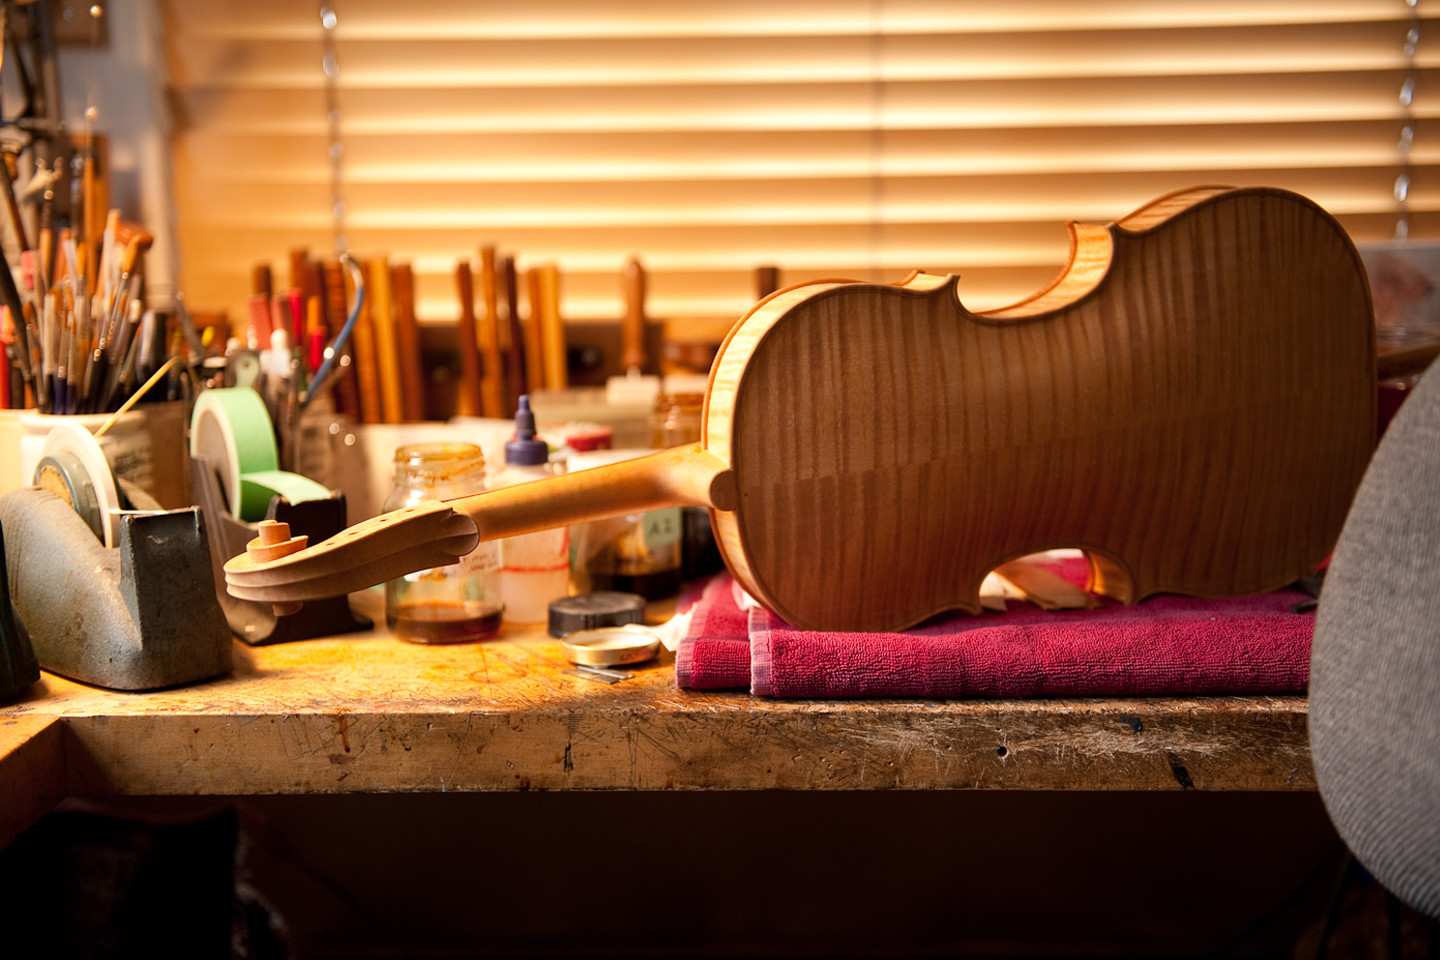 Guy Rabut Luthier